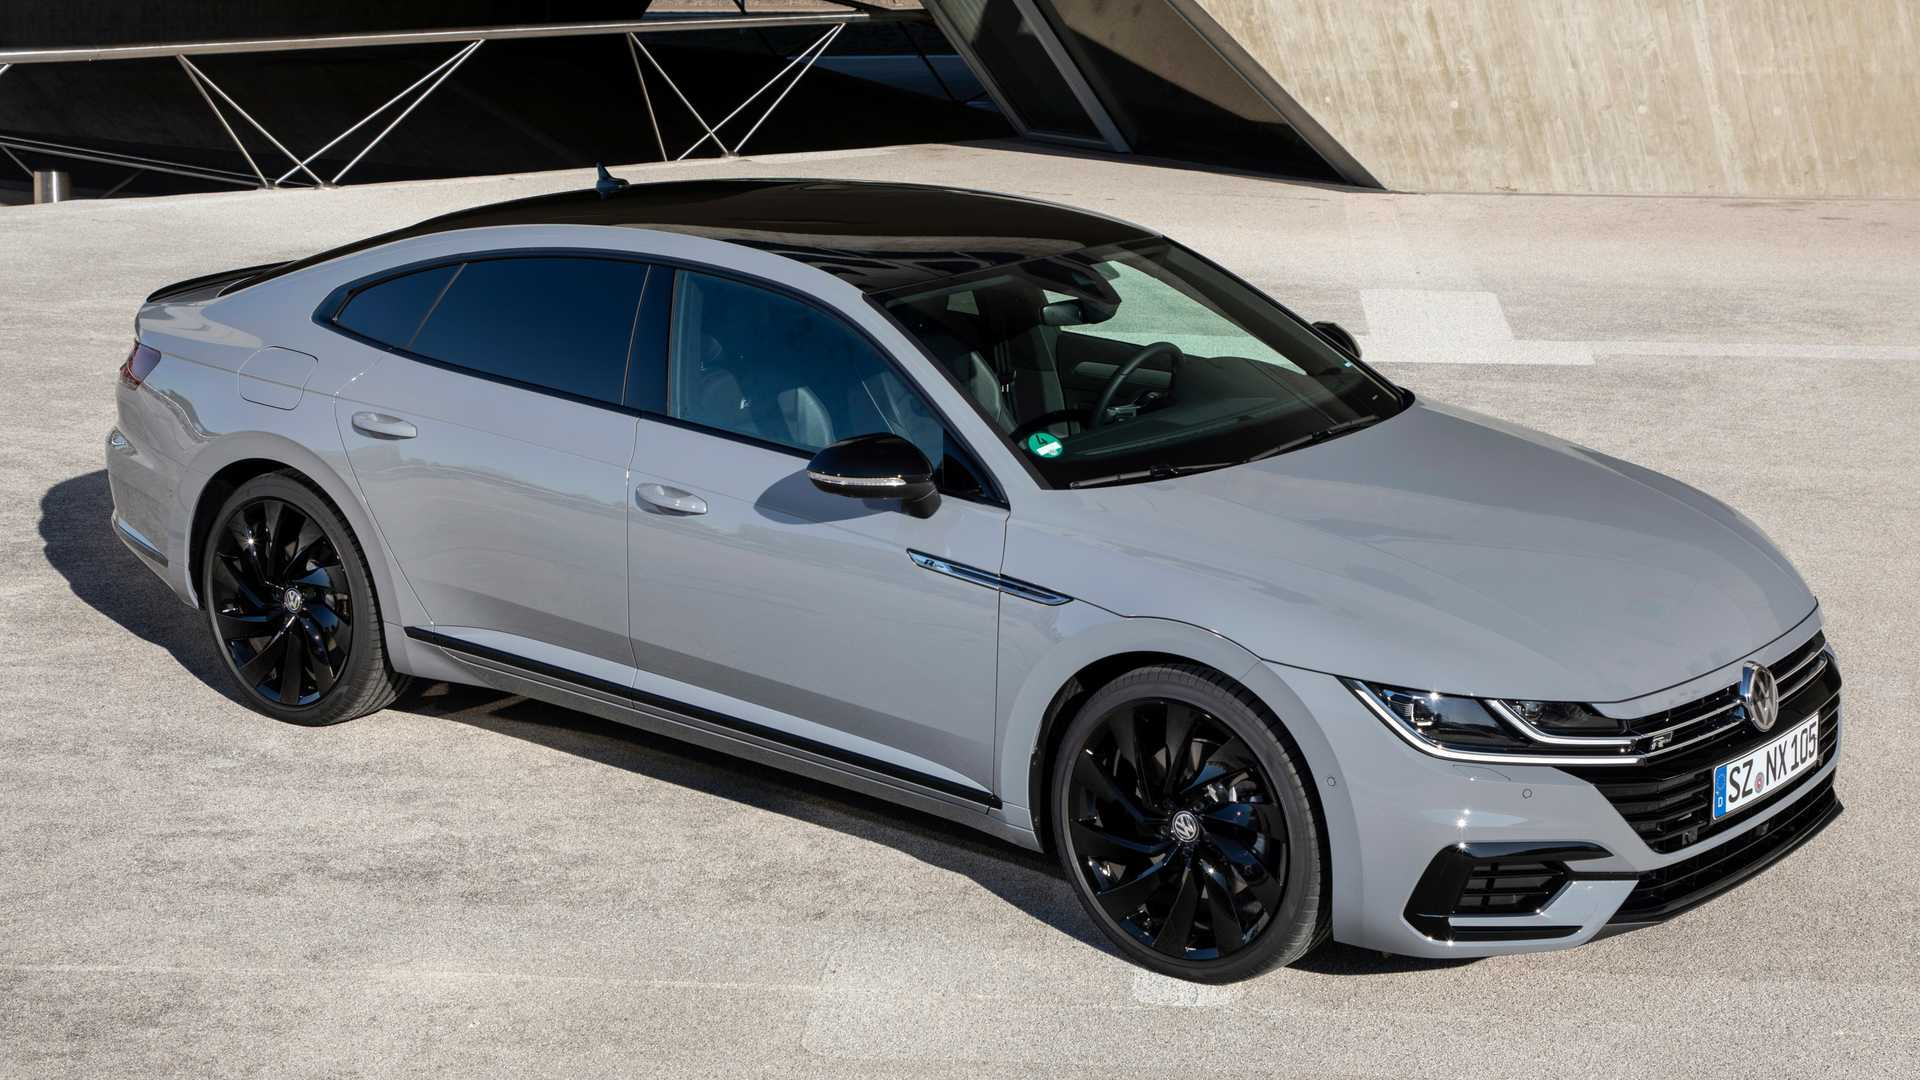 The VW Arteon R Is The Newest Hot Sedan From Germany To Land On American Shores